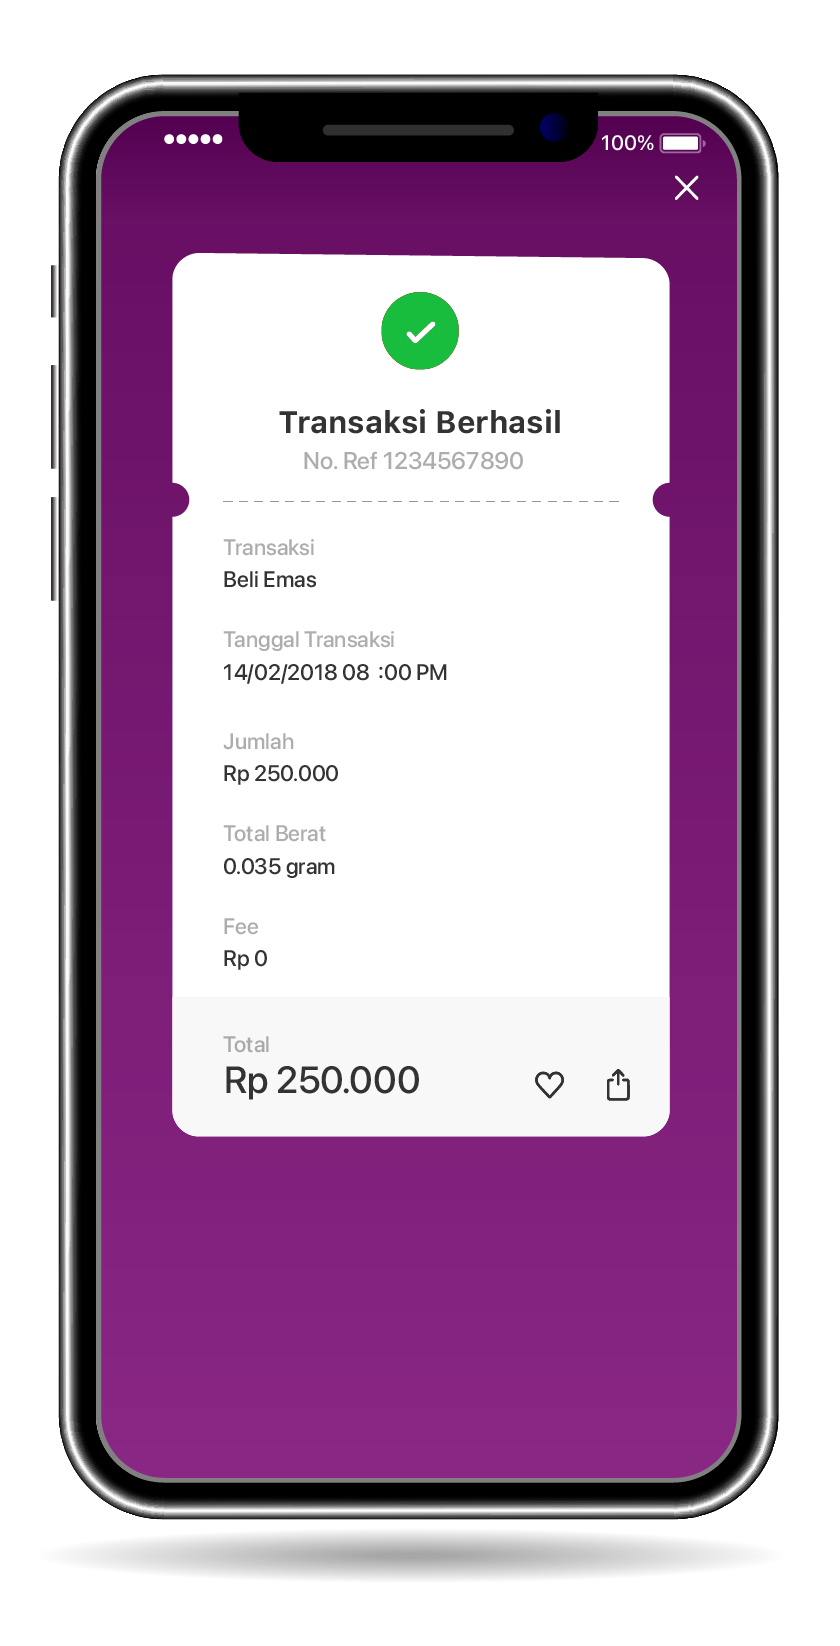 You will received a notification if transaction is successful